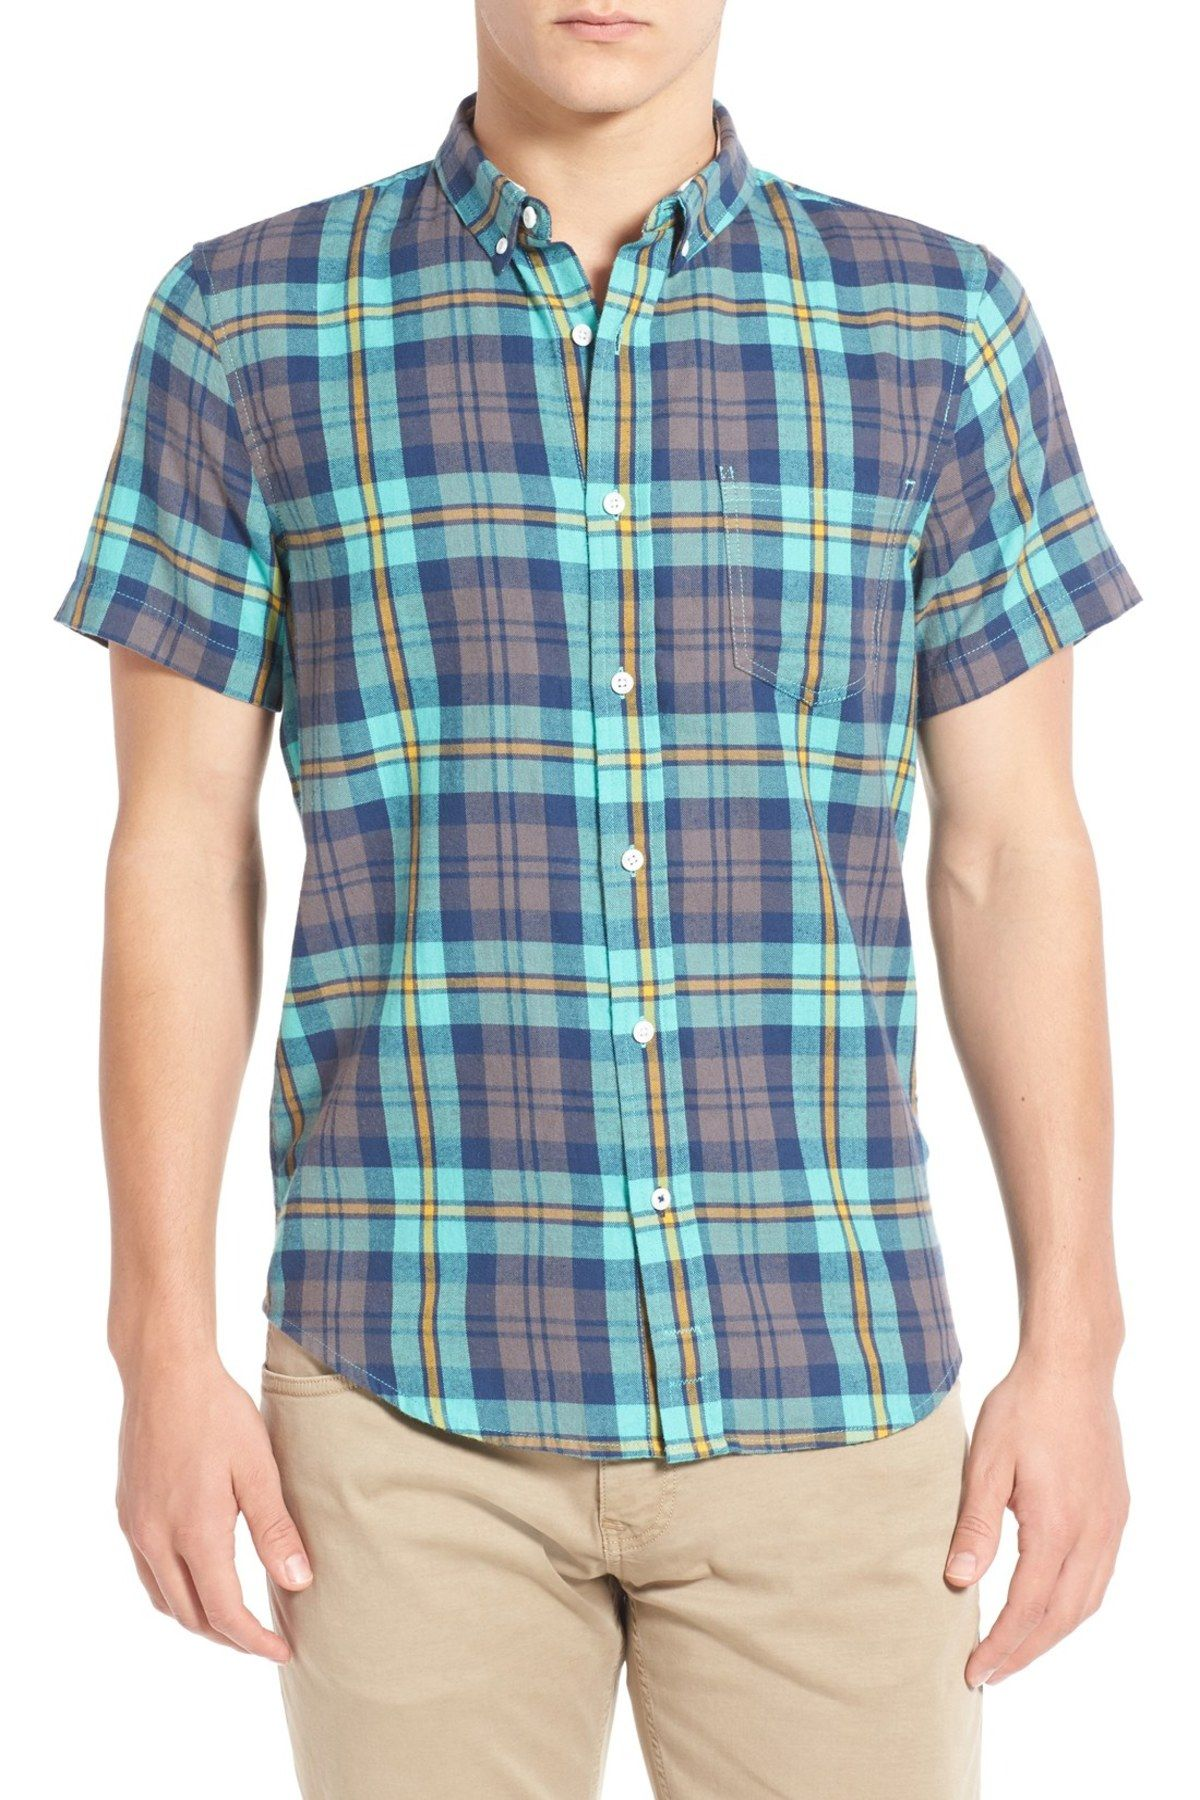 Flannel shirts at kohl's  Plaid Short Sleeve Woven Flannel Shirt  Plaid shorts Short sleeves